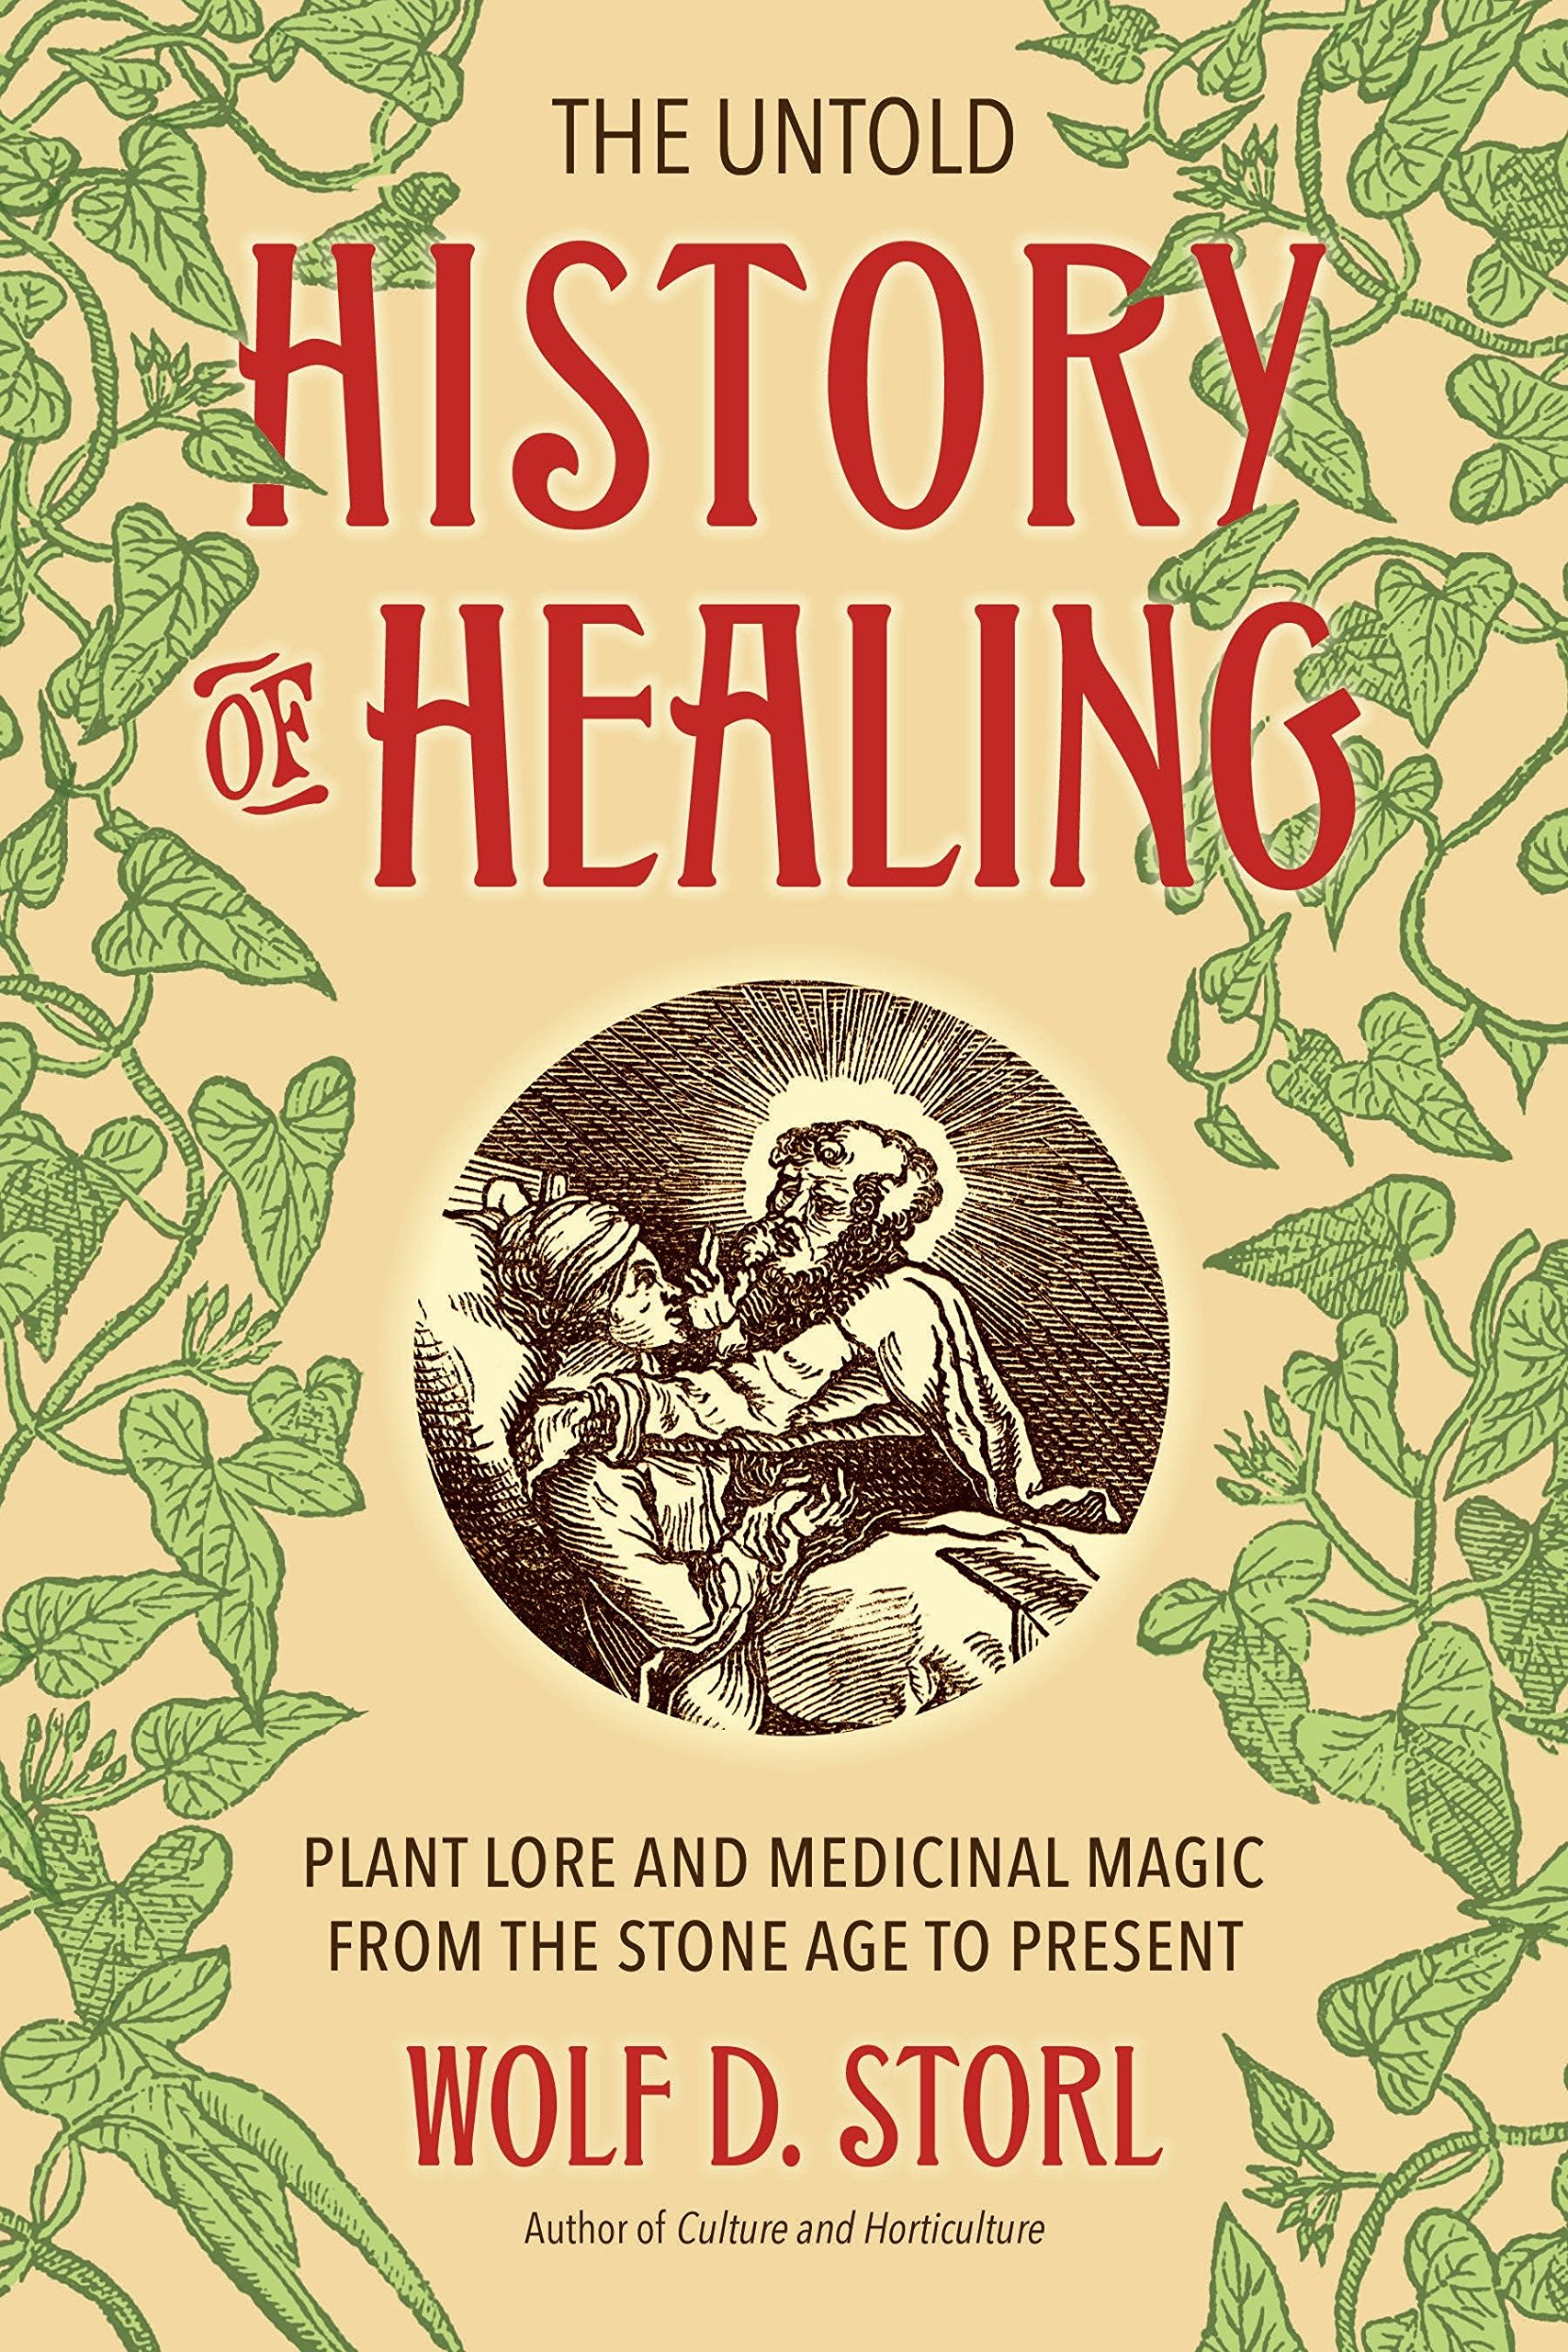 The Untold History of Healing: Plant Lore and Medicinal Magic from the  Stone Age to Present Paperback – March 21, 2017